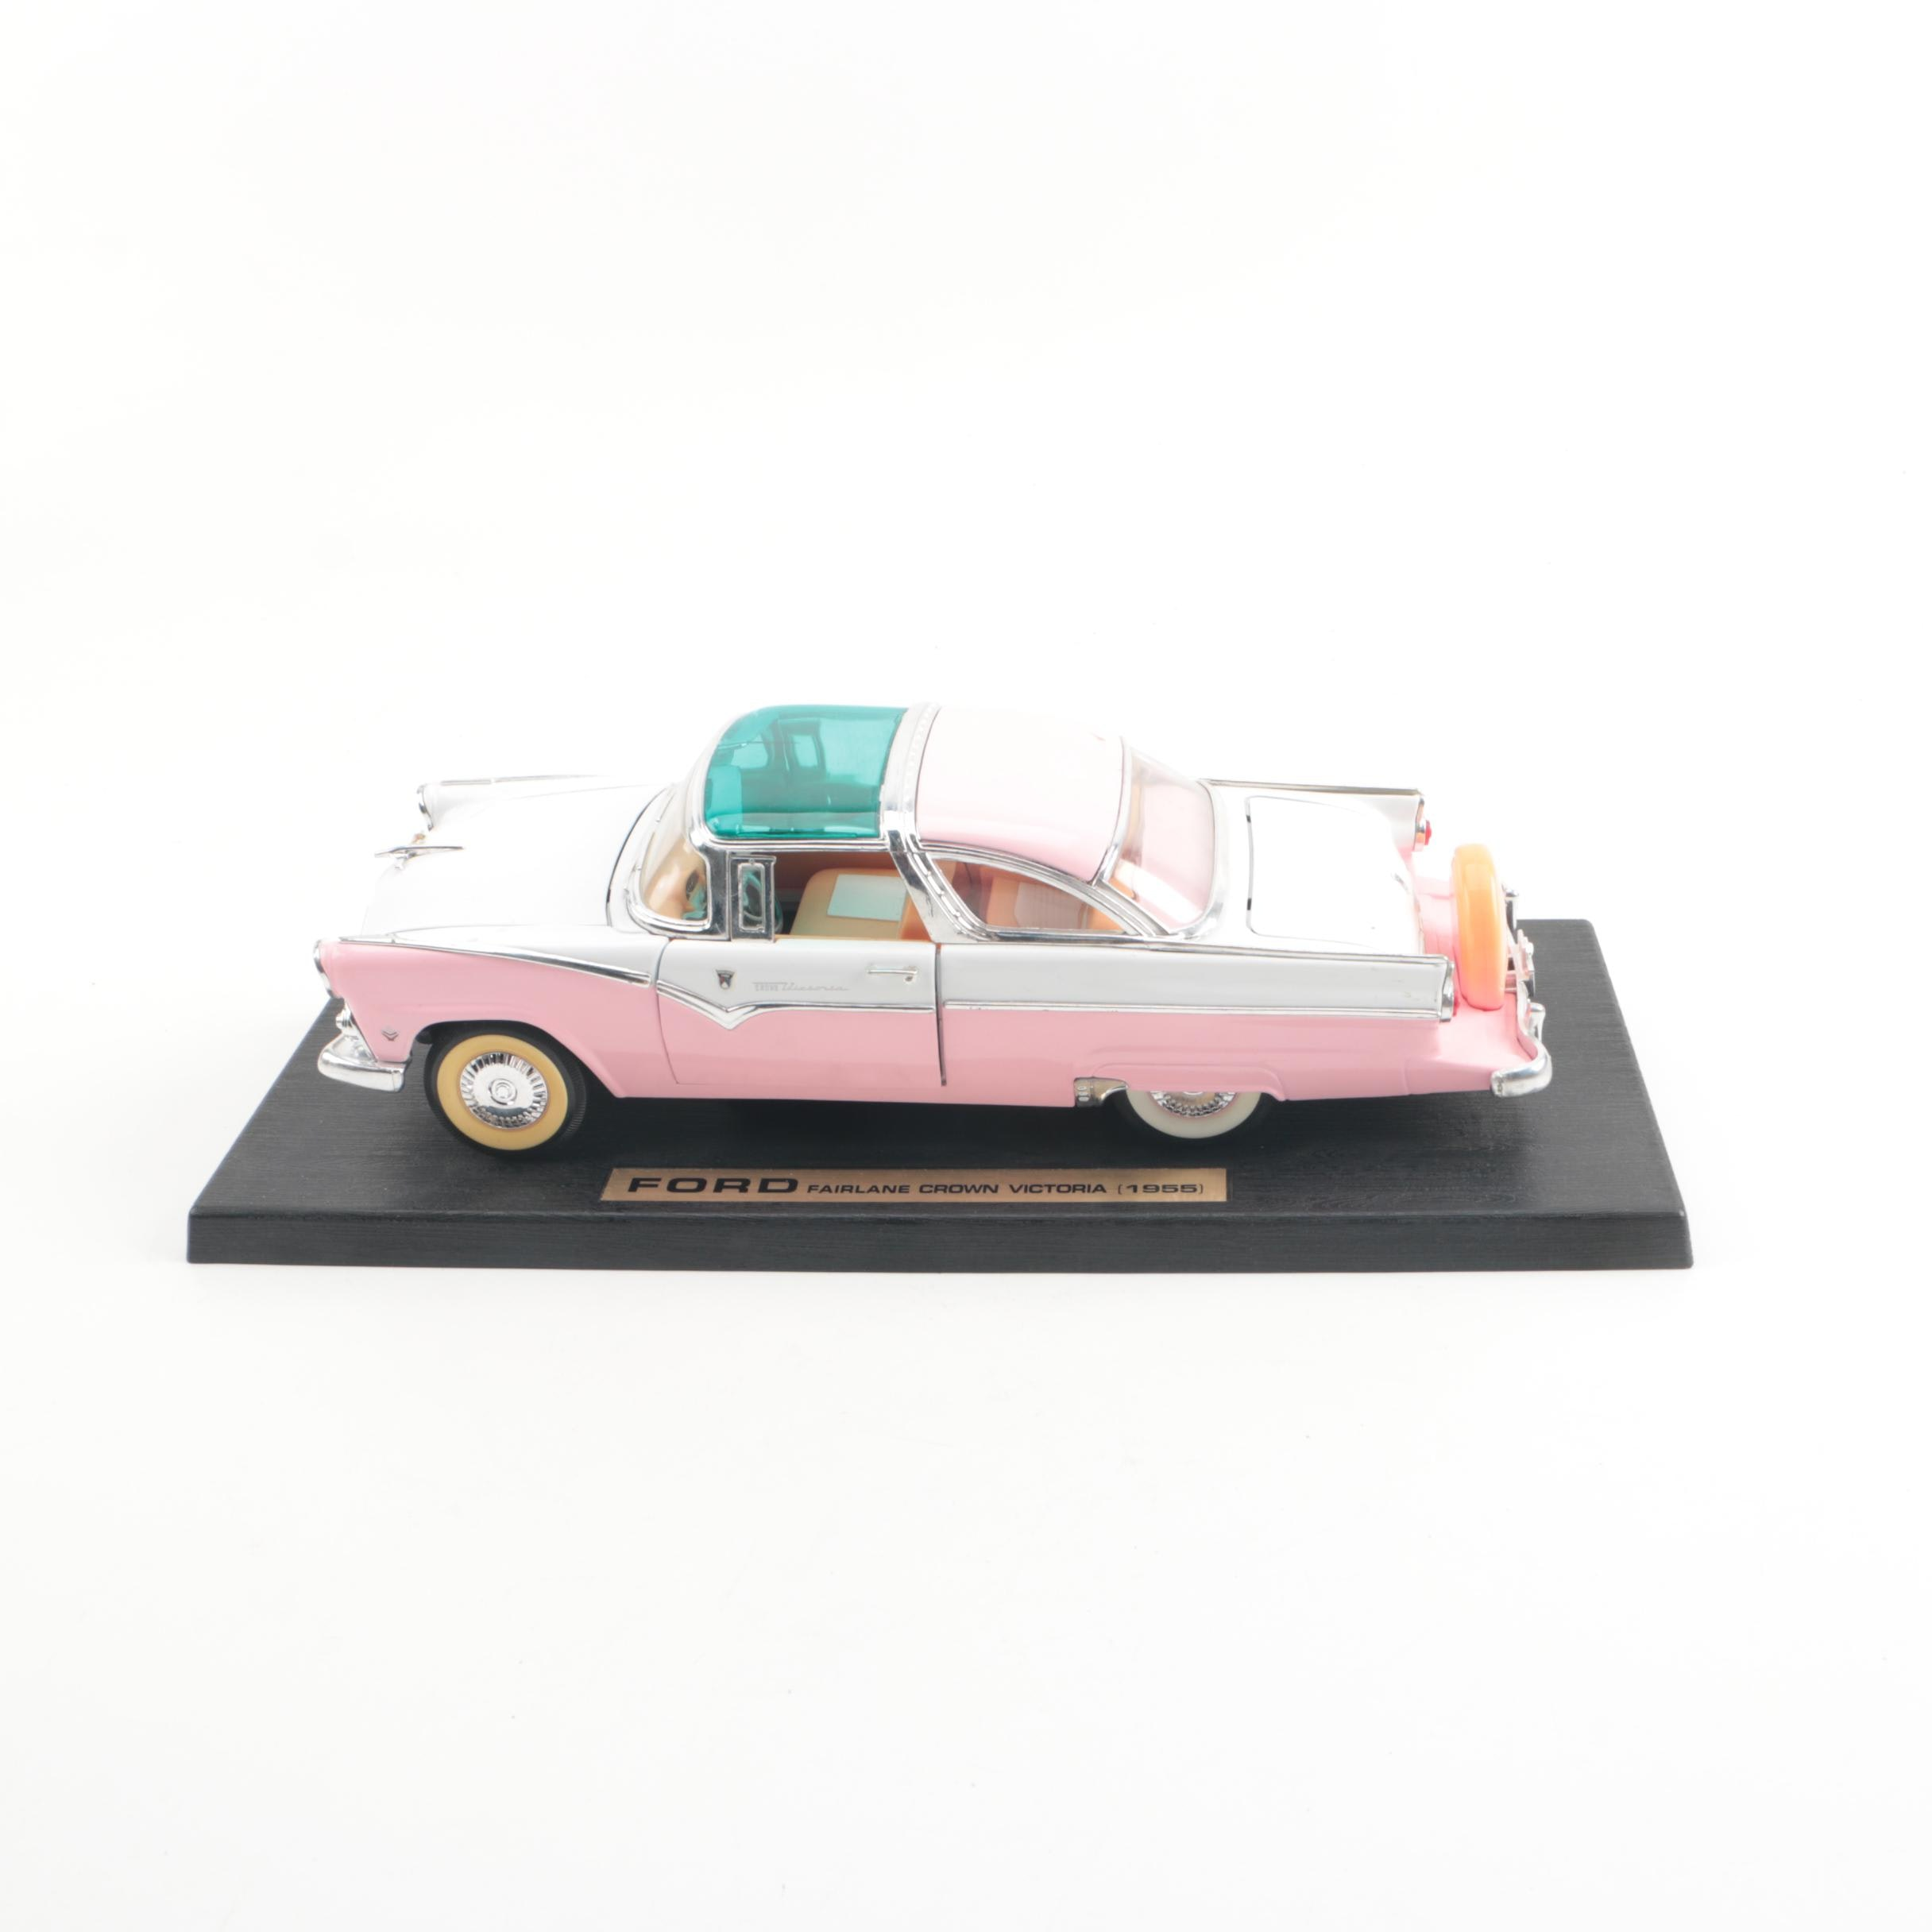 1955 Ford Fairlane Crown Victoria Die-Cast Car with Stand by Road Legends